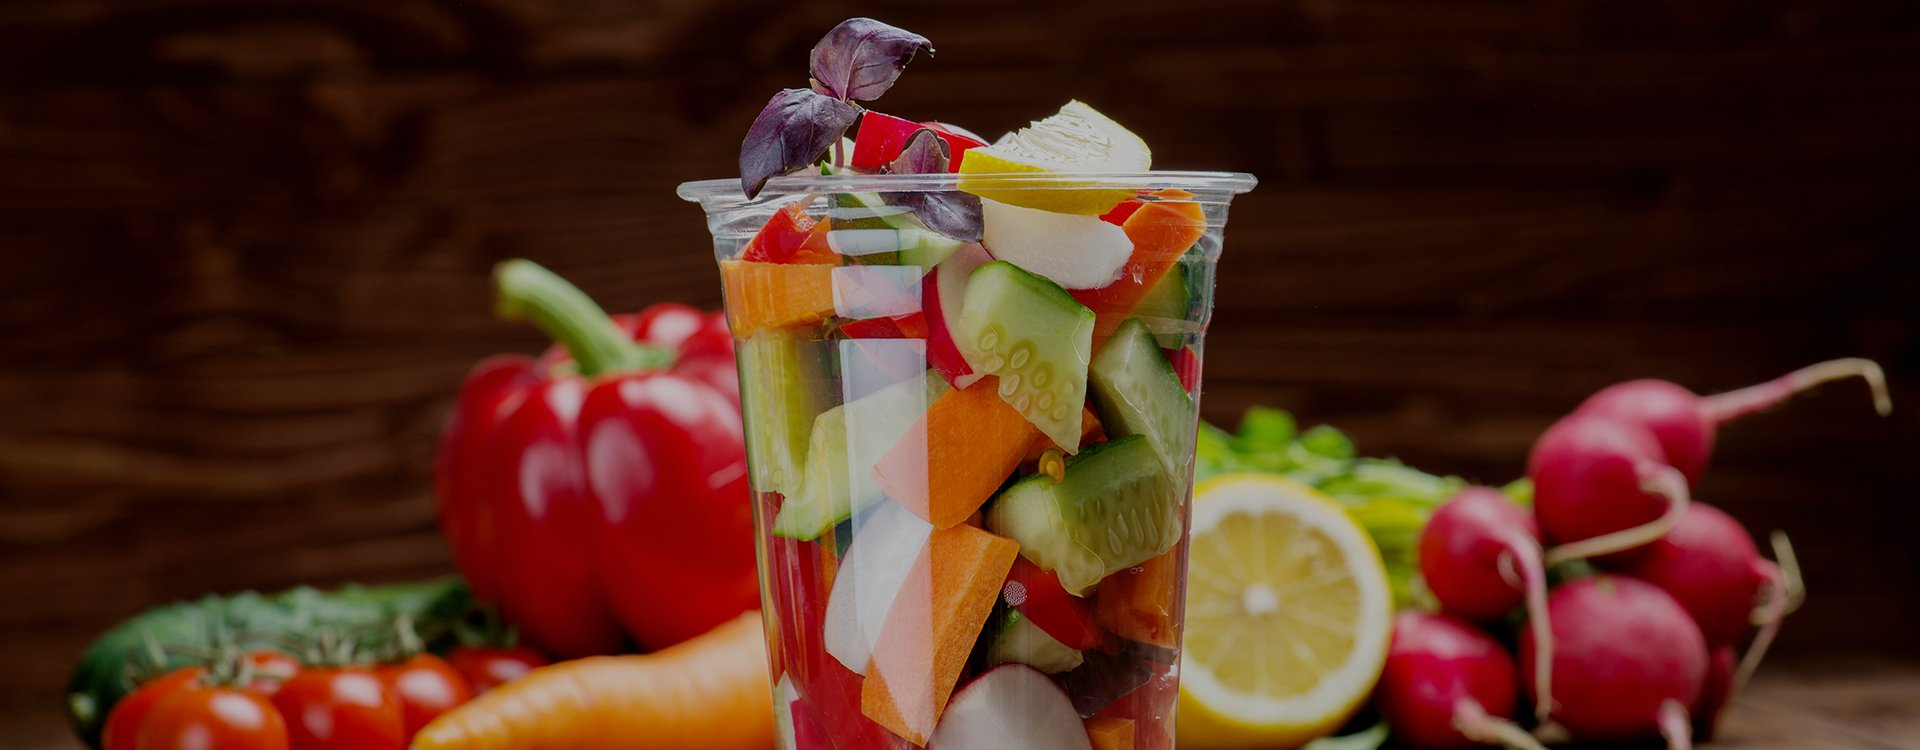 FOOD ON THE GO - Healthy Snacks for Busy people